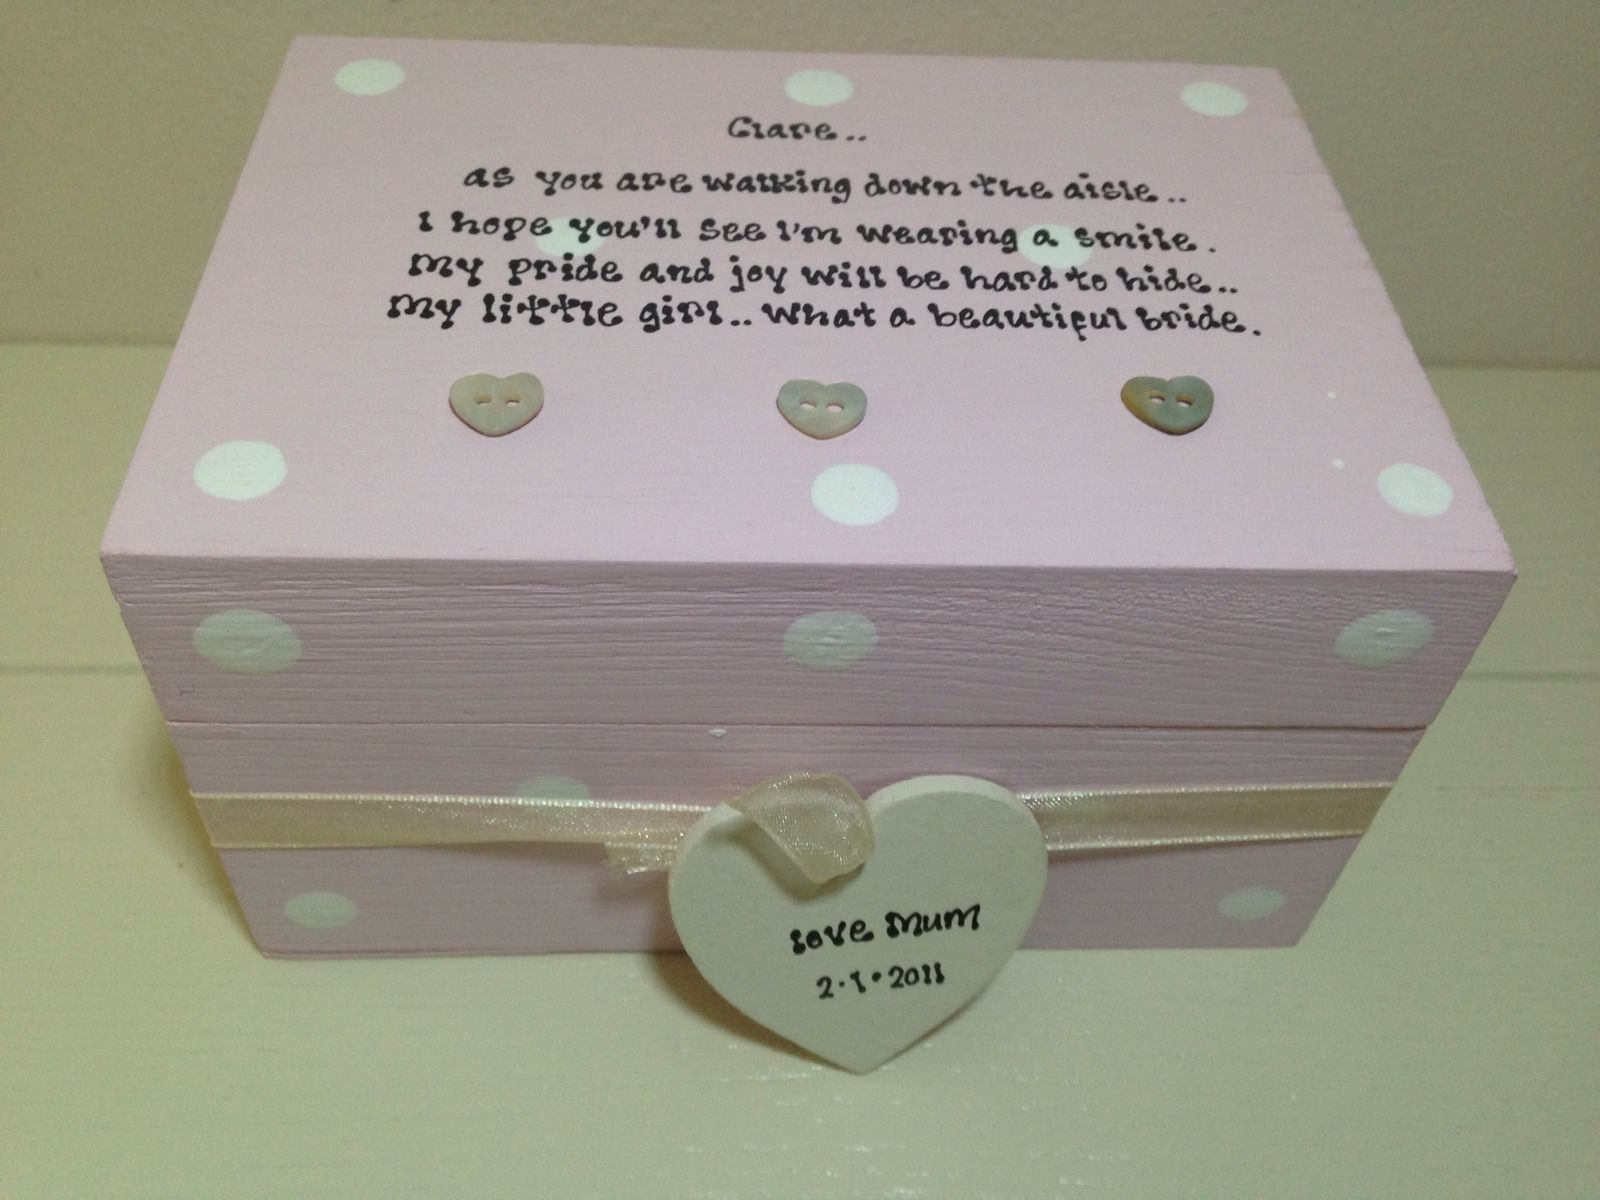 Wedding Gift Ideas For Daughter From Parents : Ideas Gifts From Mother To Daughter On Wedding Day shabby personalised ...